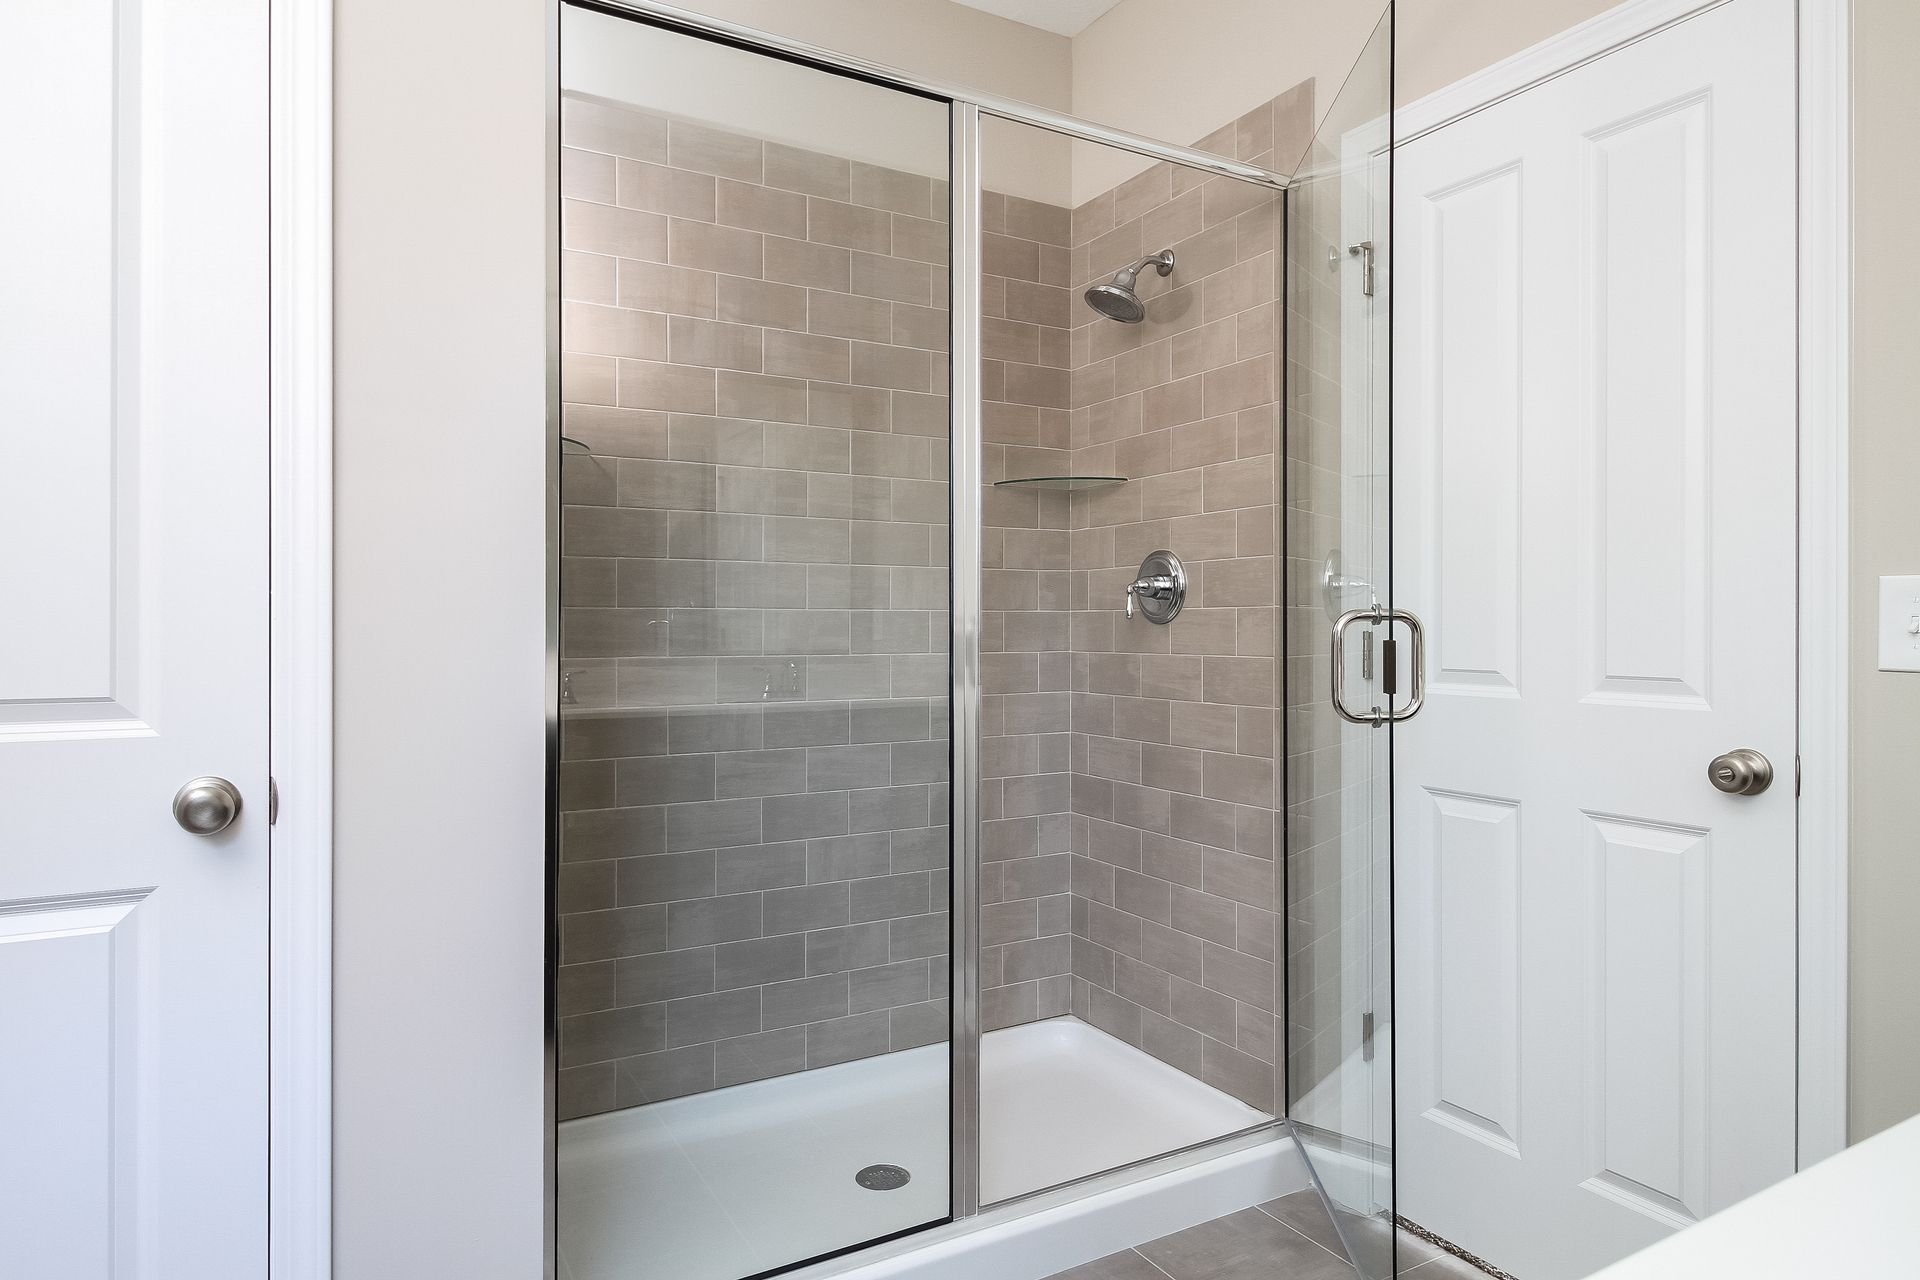 Bathroom featured in the Traditions 1600 V8.0b By Allen Edwin Homes in Benton Harbor, MI